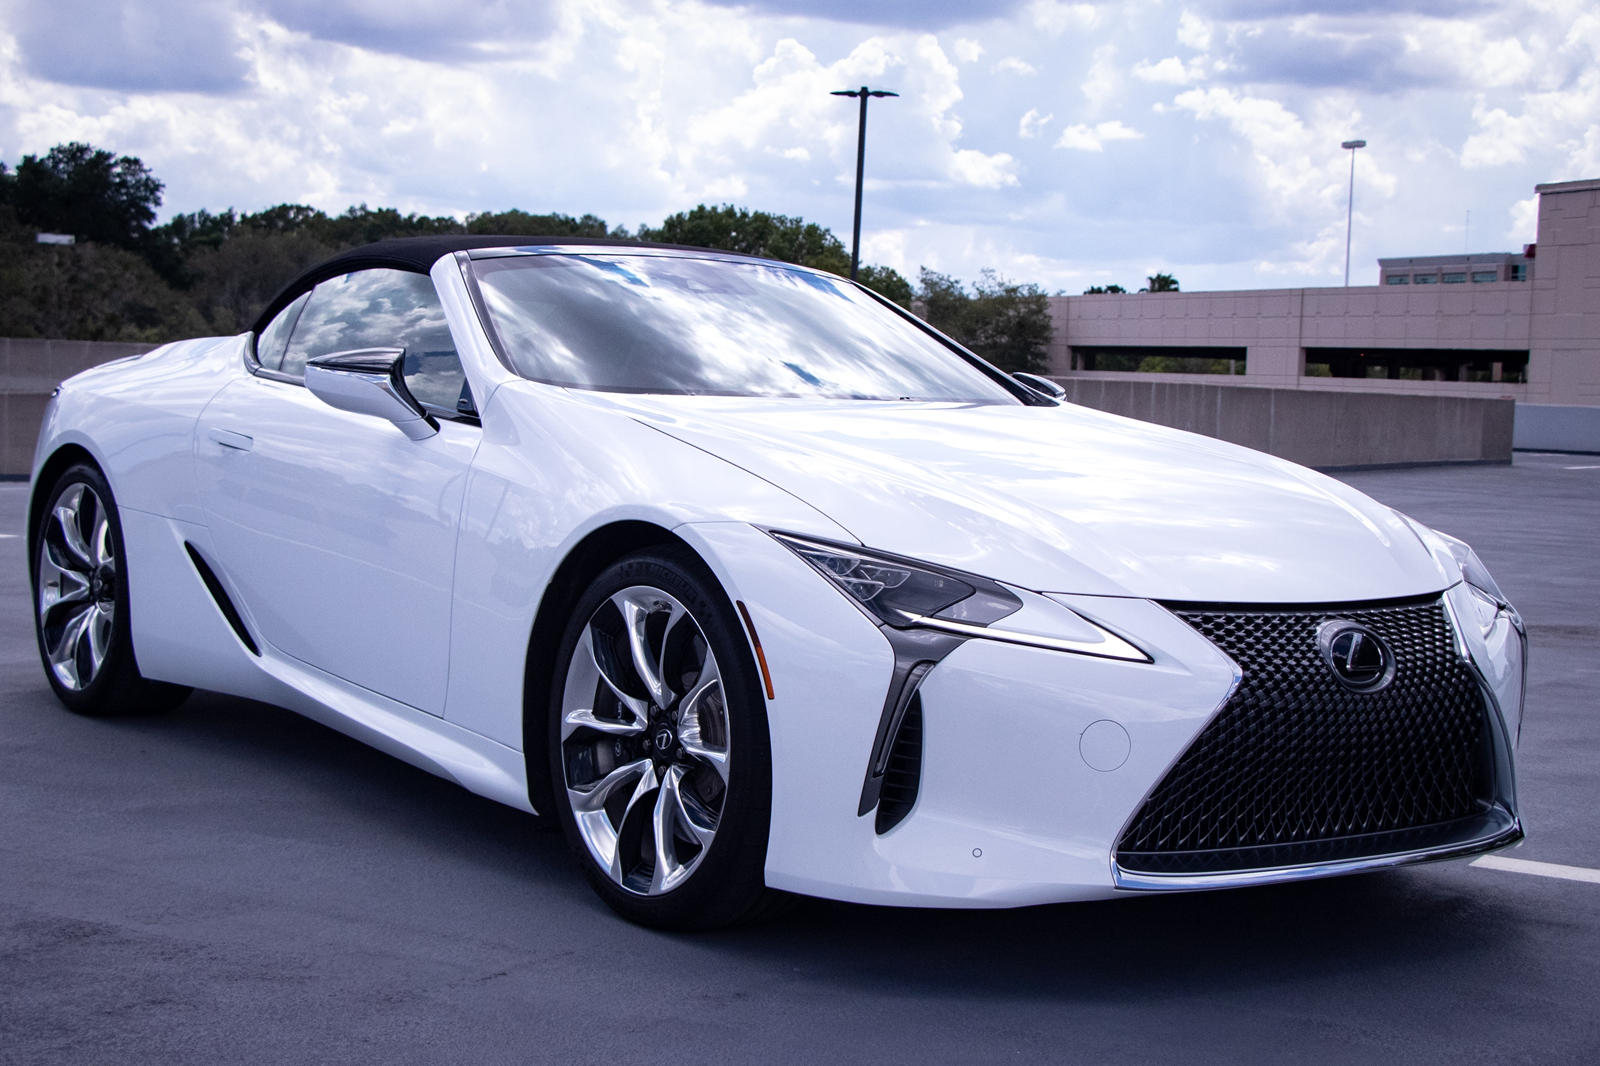 2021 Lexus Lc Convertible Review Trims Specs Price New Interior Features Exterior Design And Specifications Carbuzz